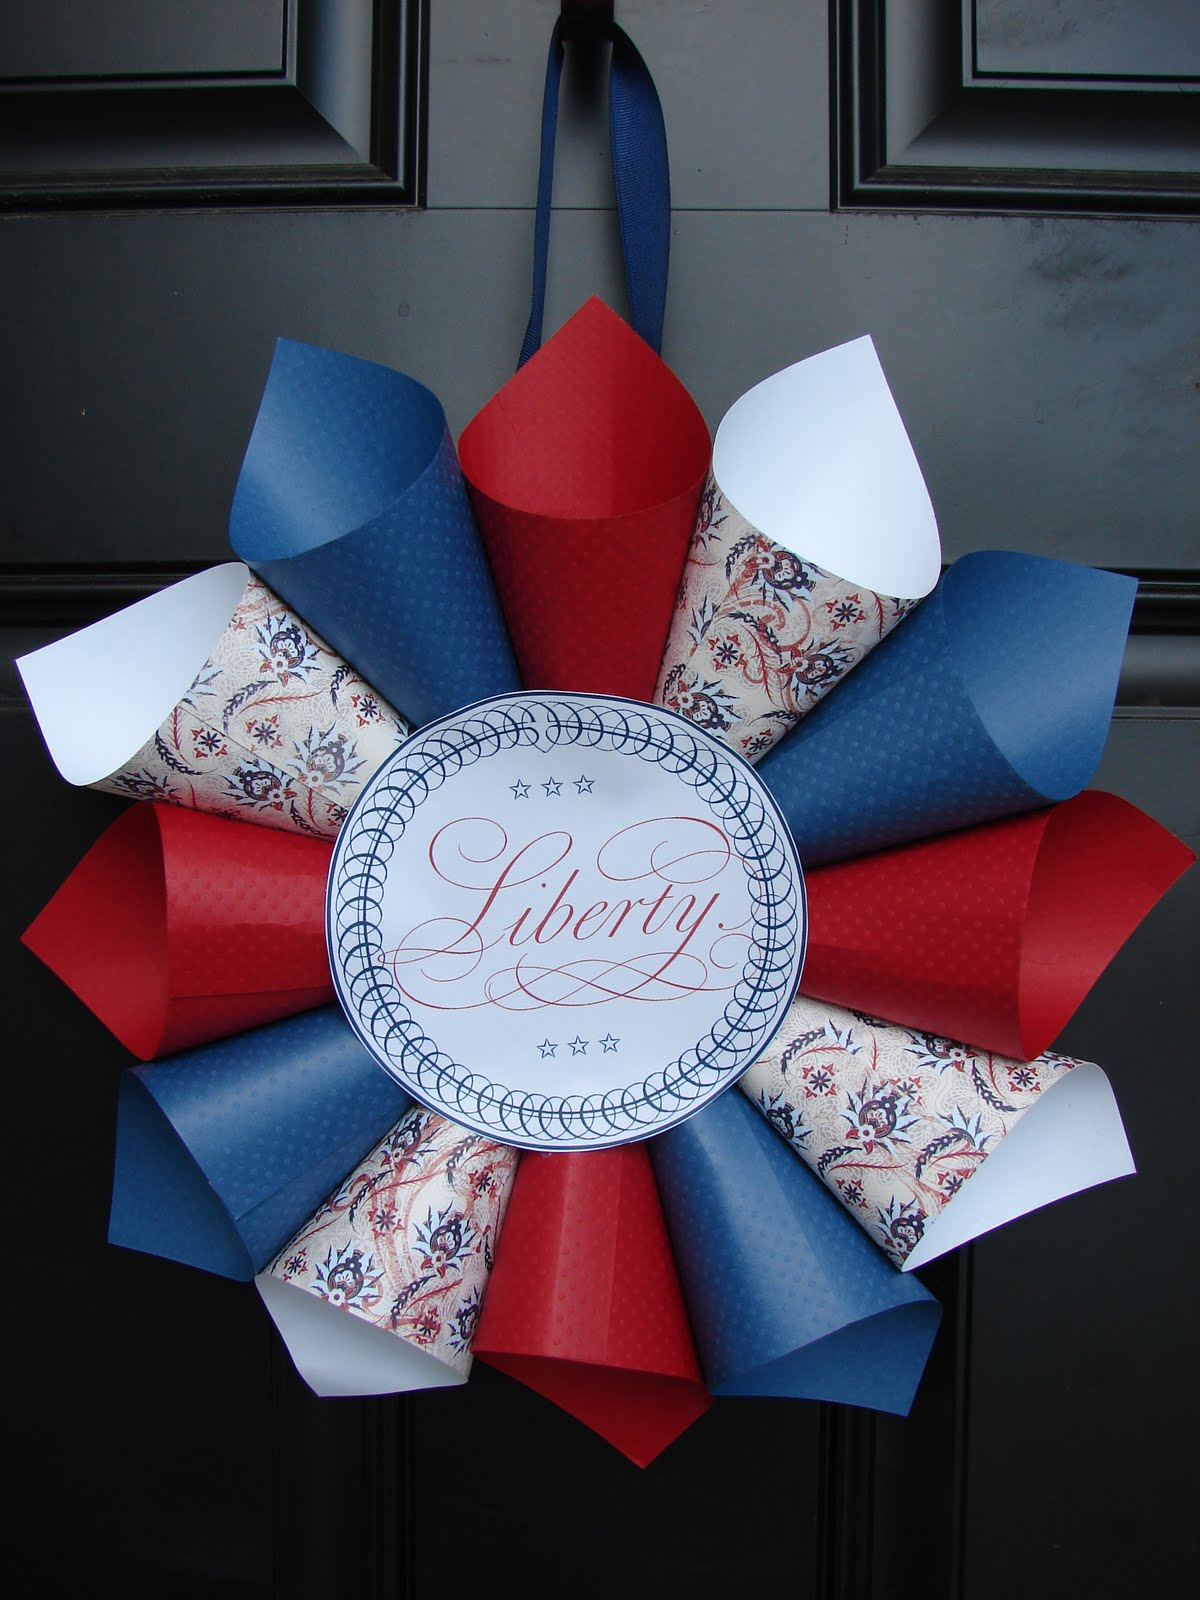 Festive july 4th diy wreaths easy simple inspired paper cones jeuxipadfo Images